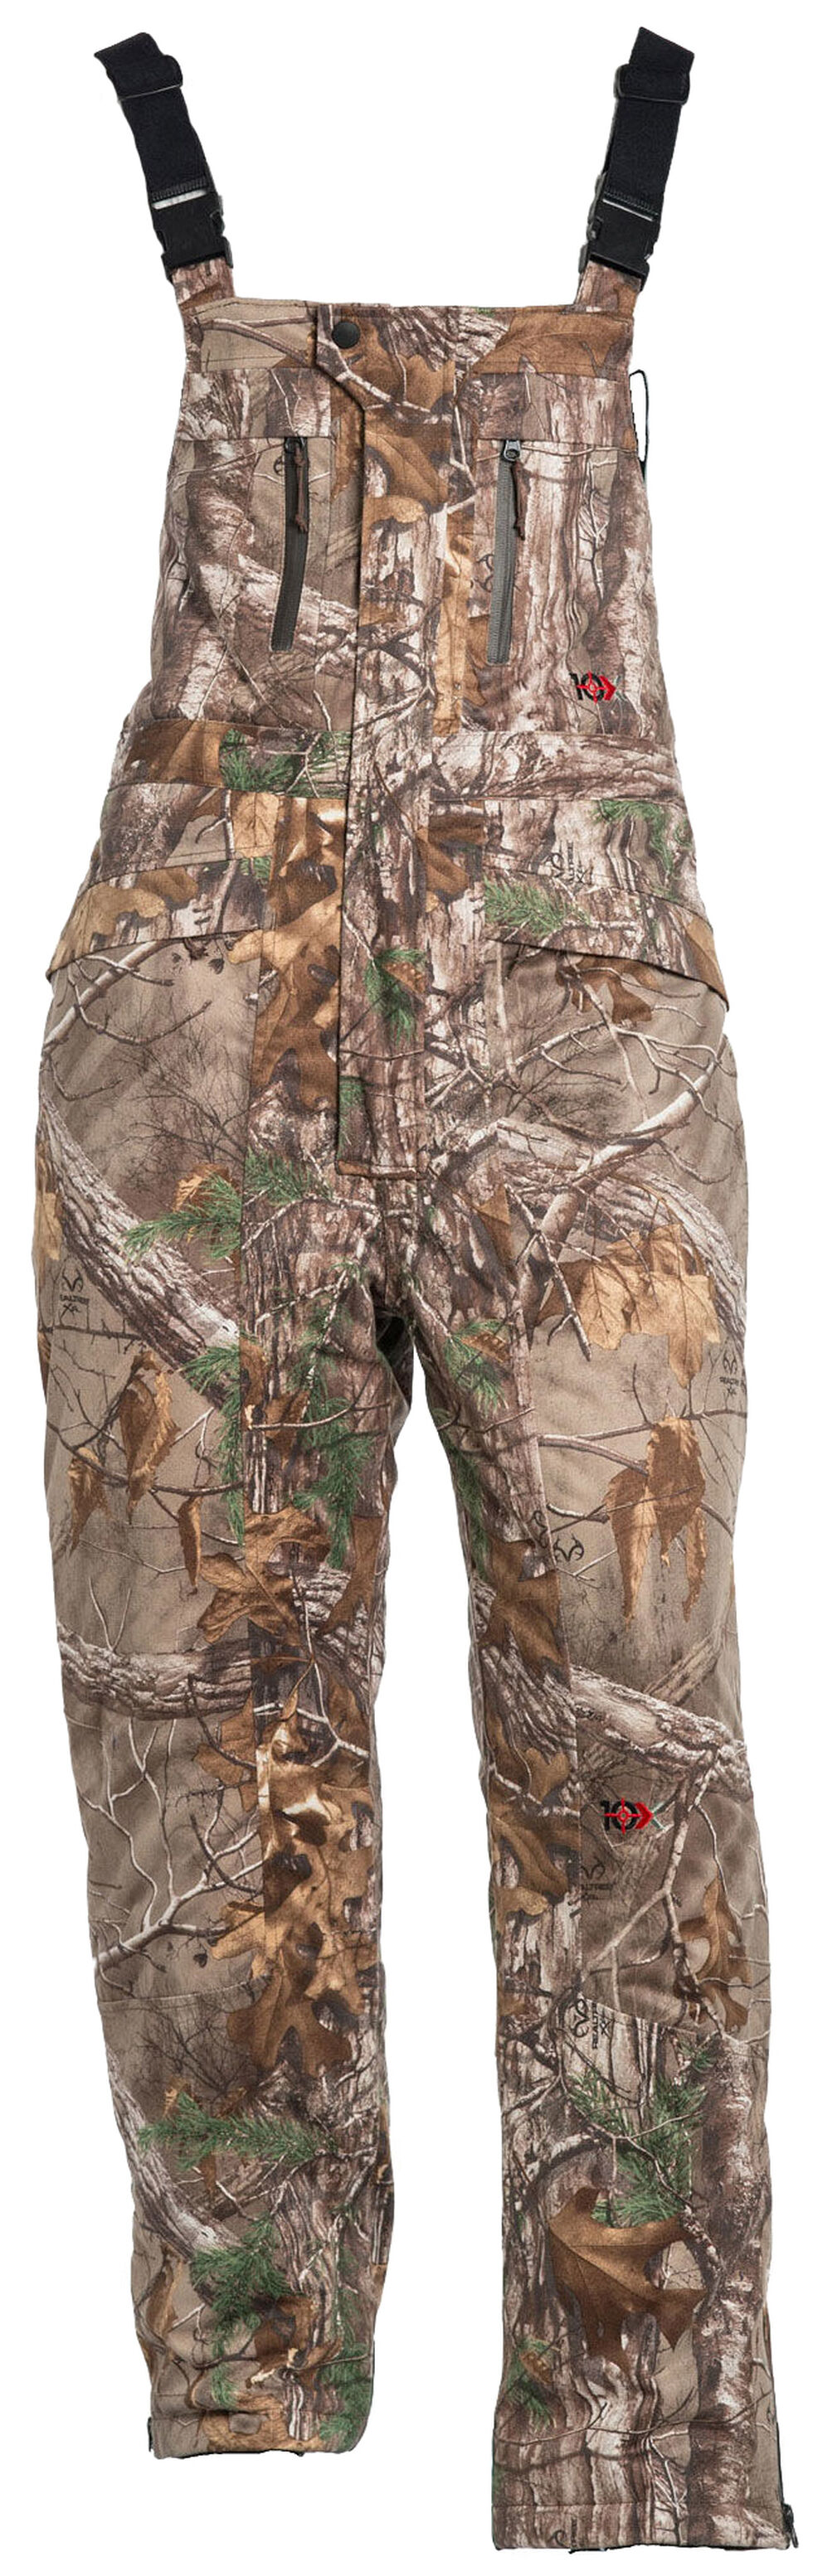 10X Realtree Xtra Silent Quest Insulated Scentrex Bib, Camouflage, hi-res